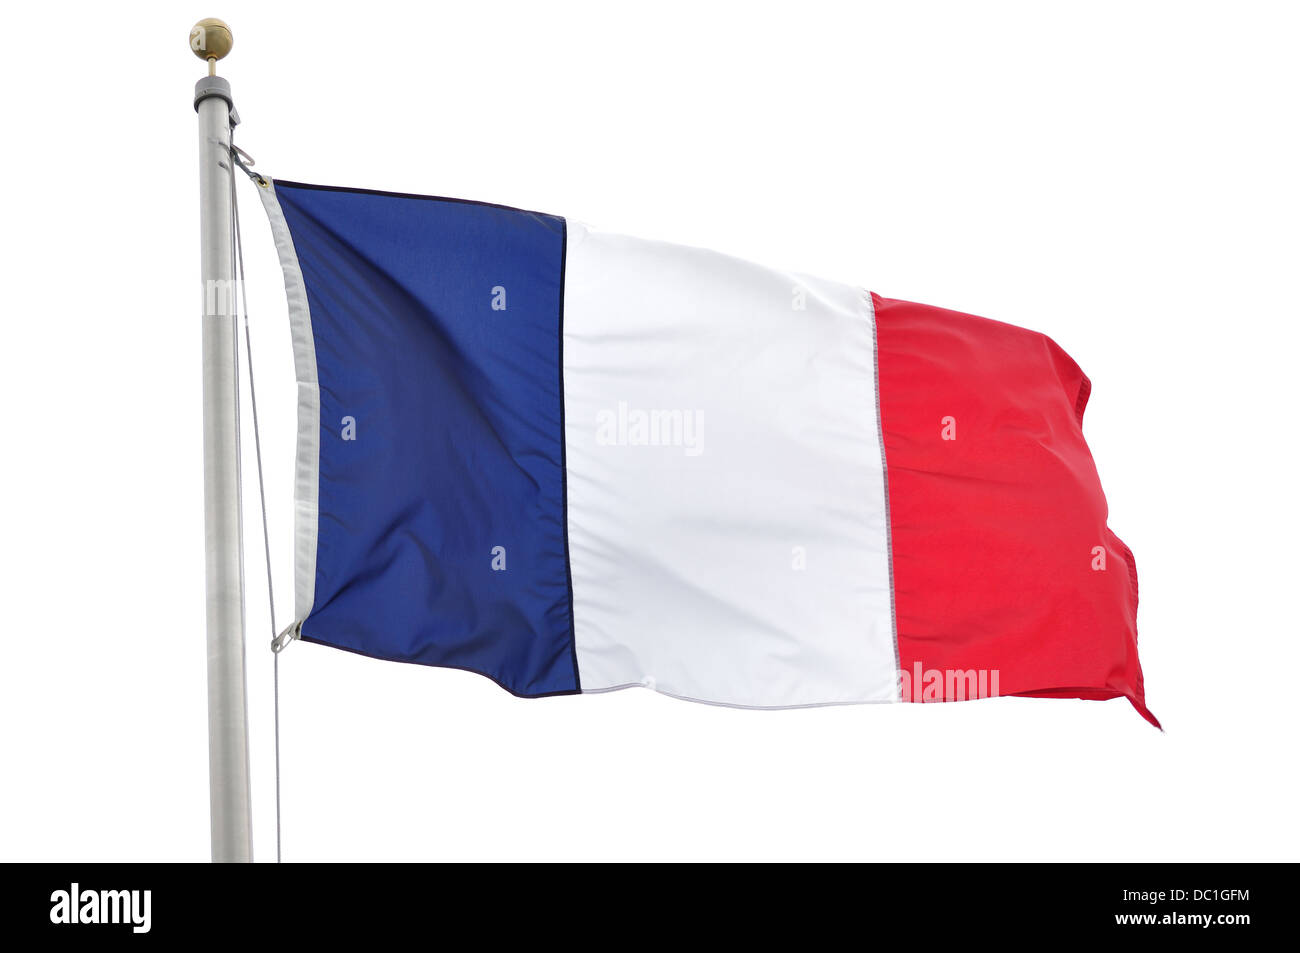 French flag of france - Stock Image